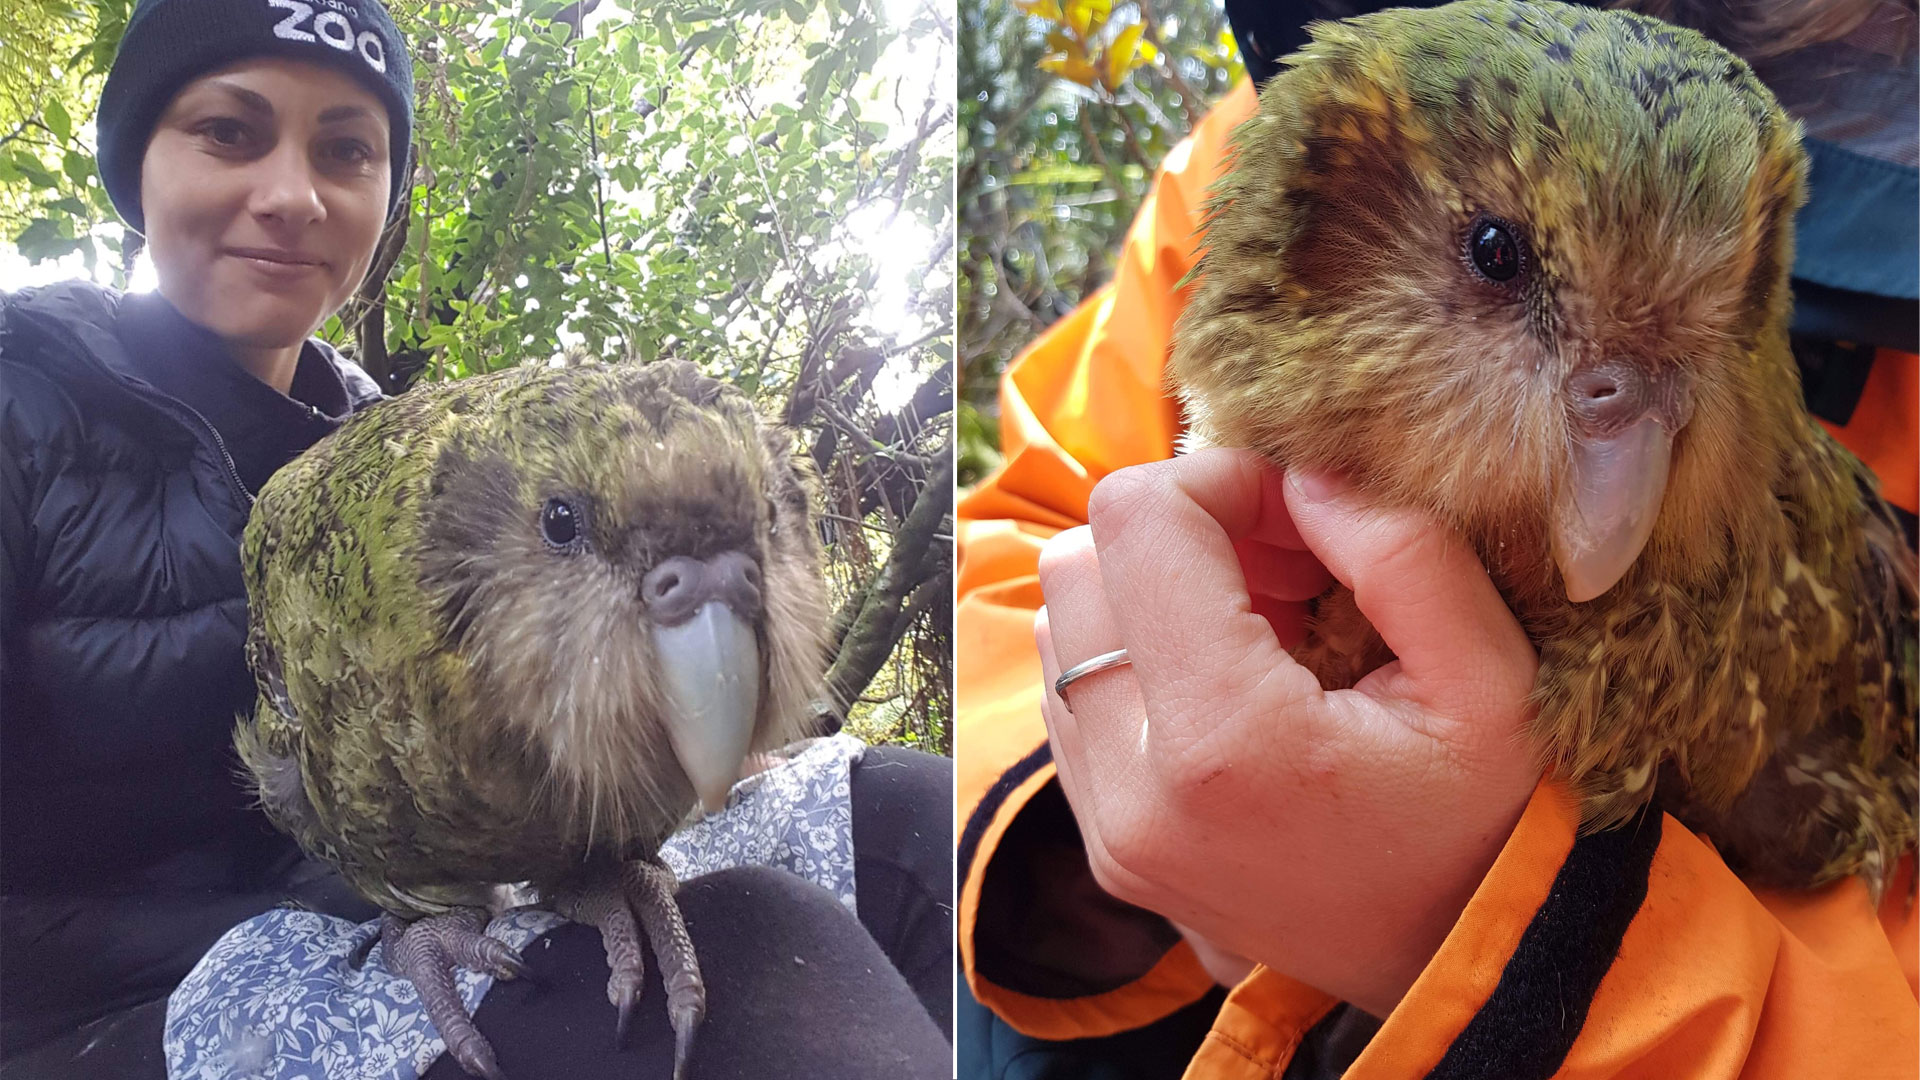 https://rfacdn.nz/zoo/assets/media/jasmine-with-kakapo-gallery-4.jpg